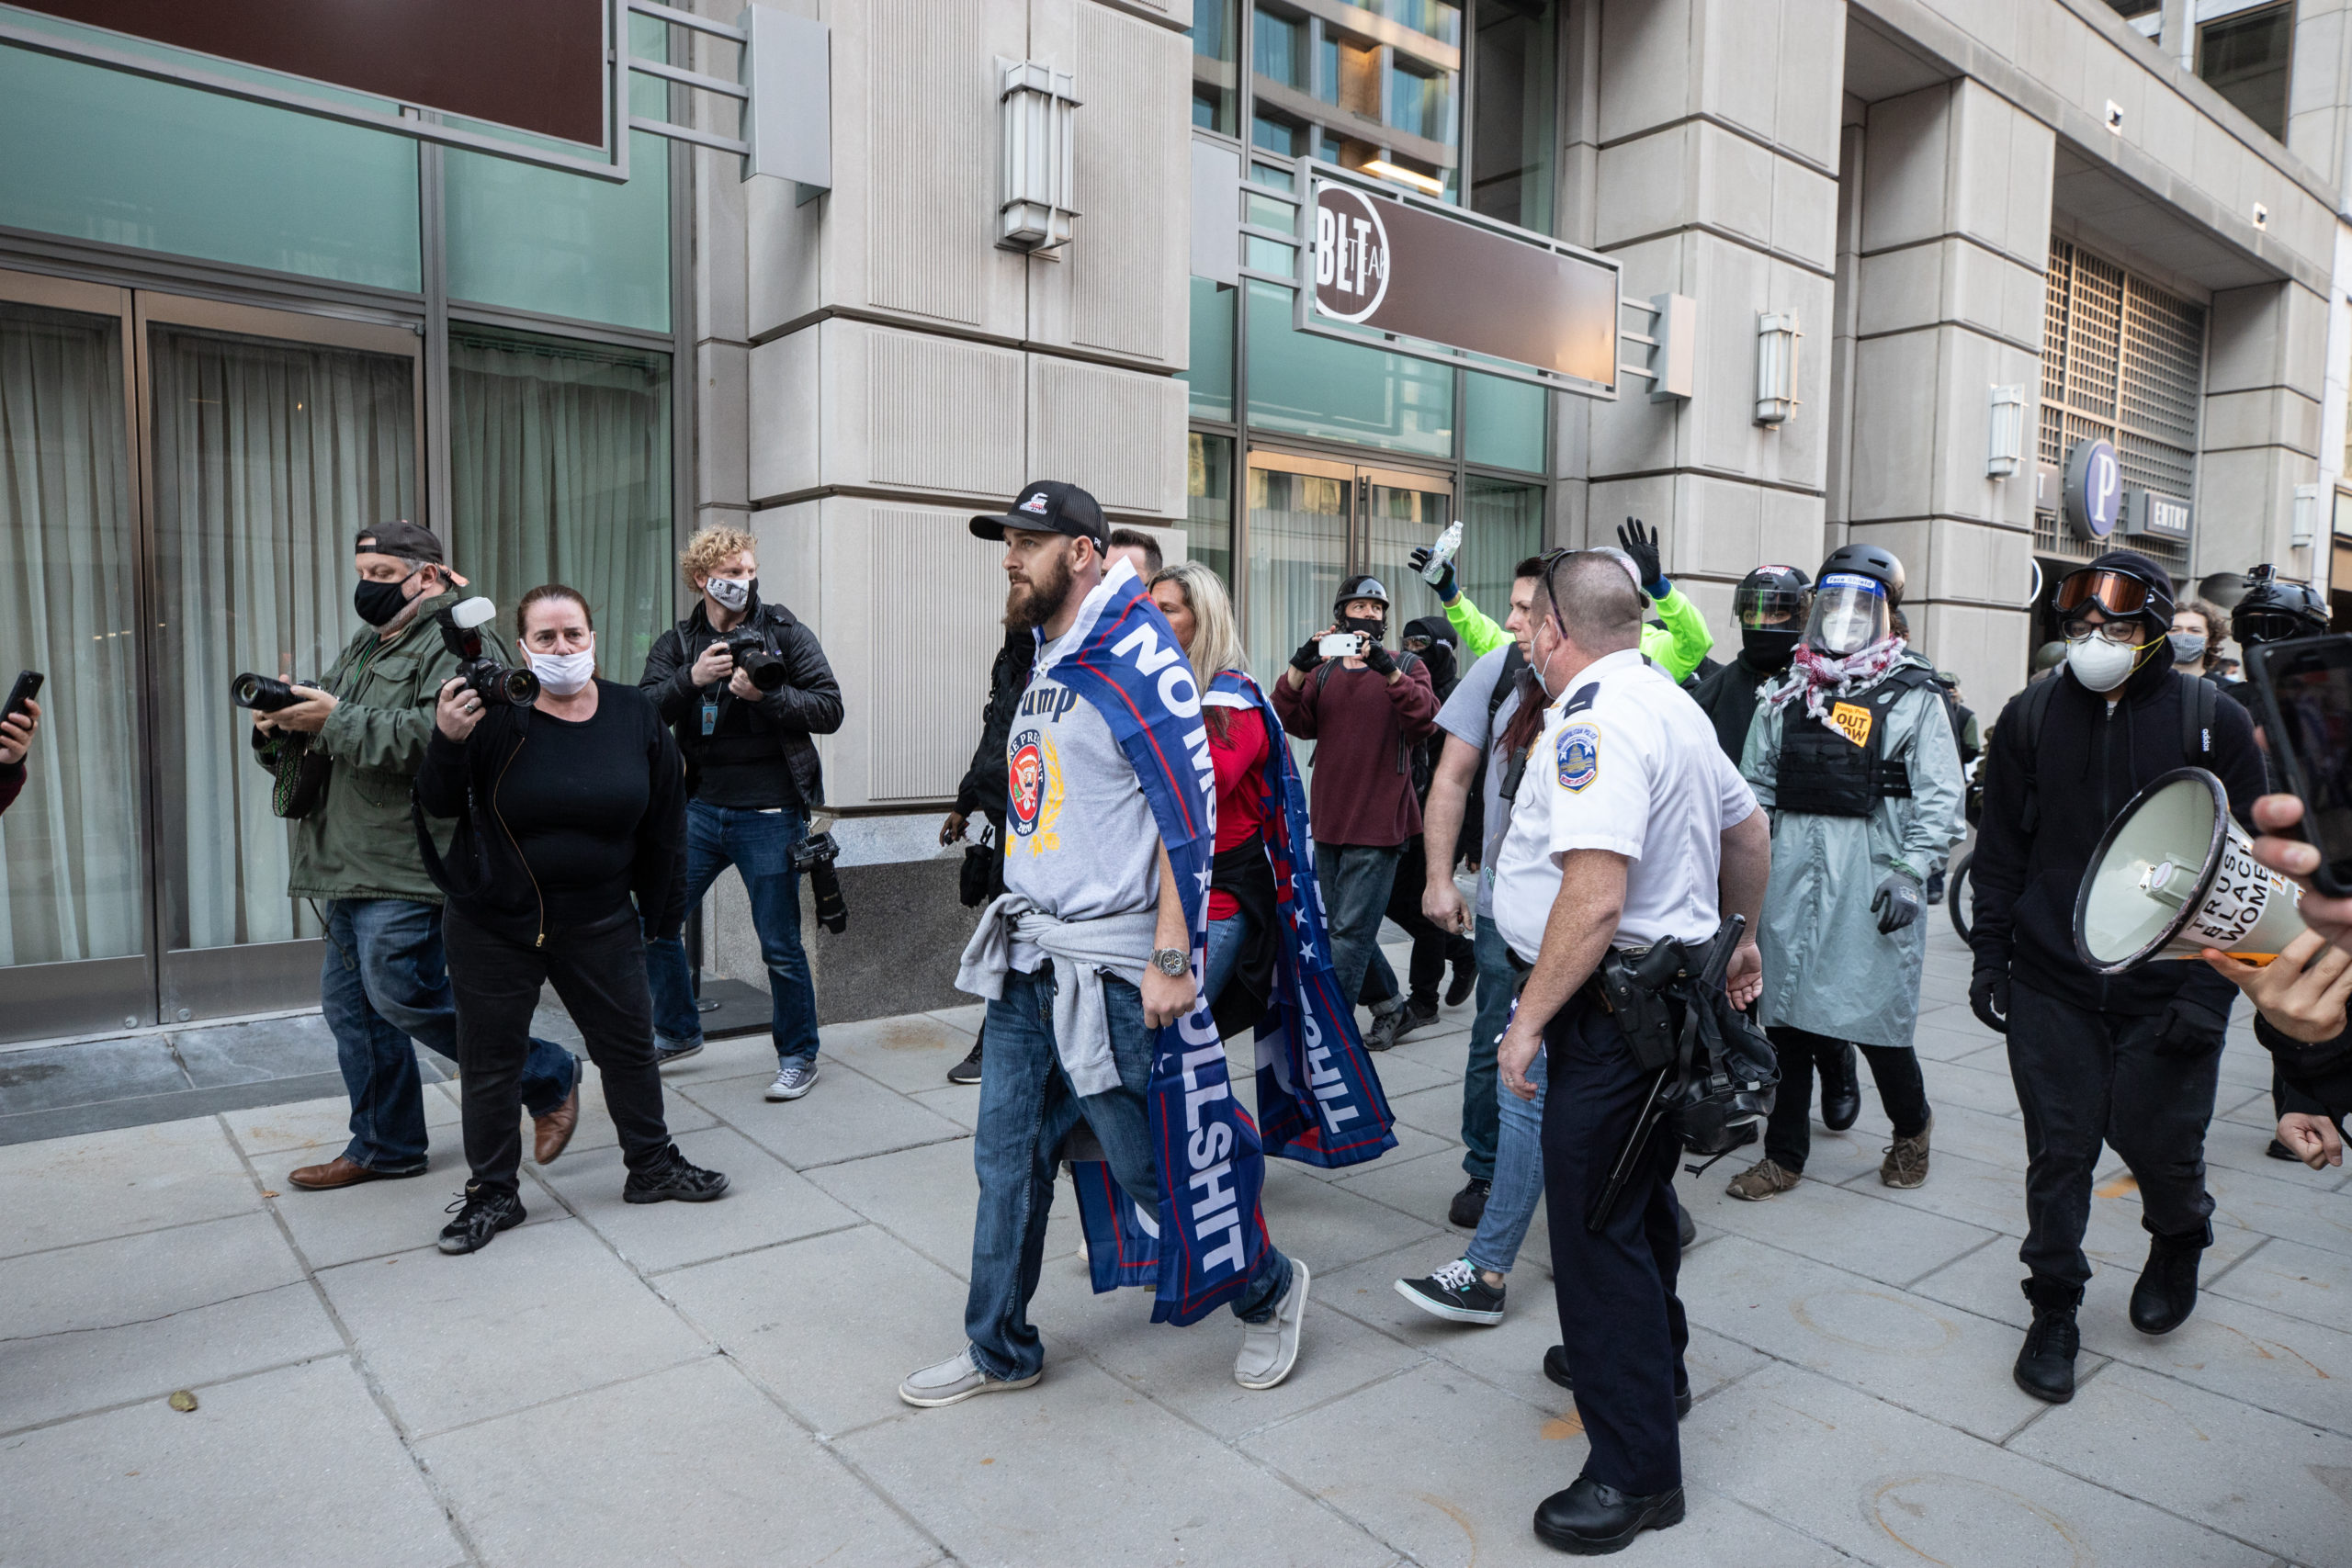 A supporter of President Donald Trump was escorted away from counter protesters by Metropolitan Police Department officers in Black Lives Matter Plaza in Washington, D.C. on Dec. 12, 2020. (Photo: Kaylee Greenlee - Daily Caller News Foundation)